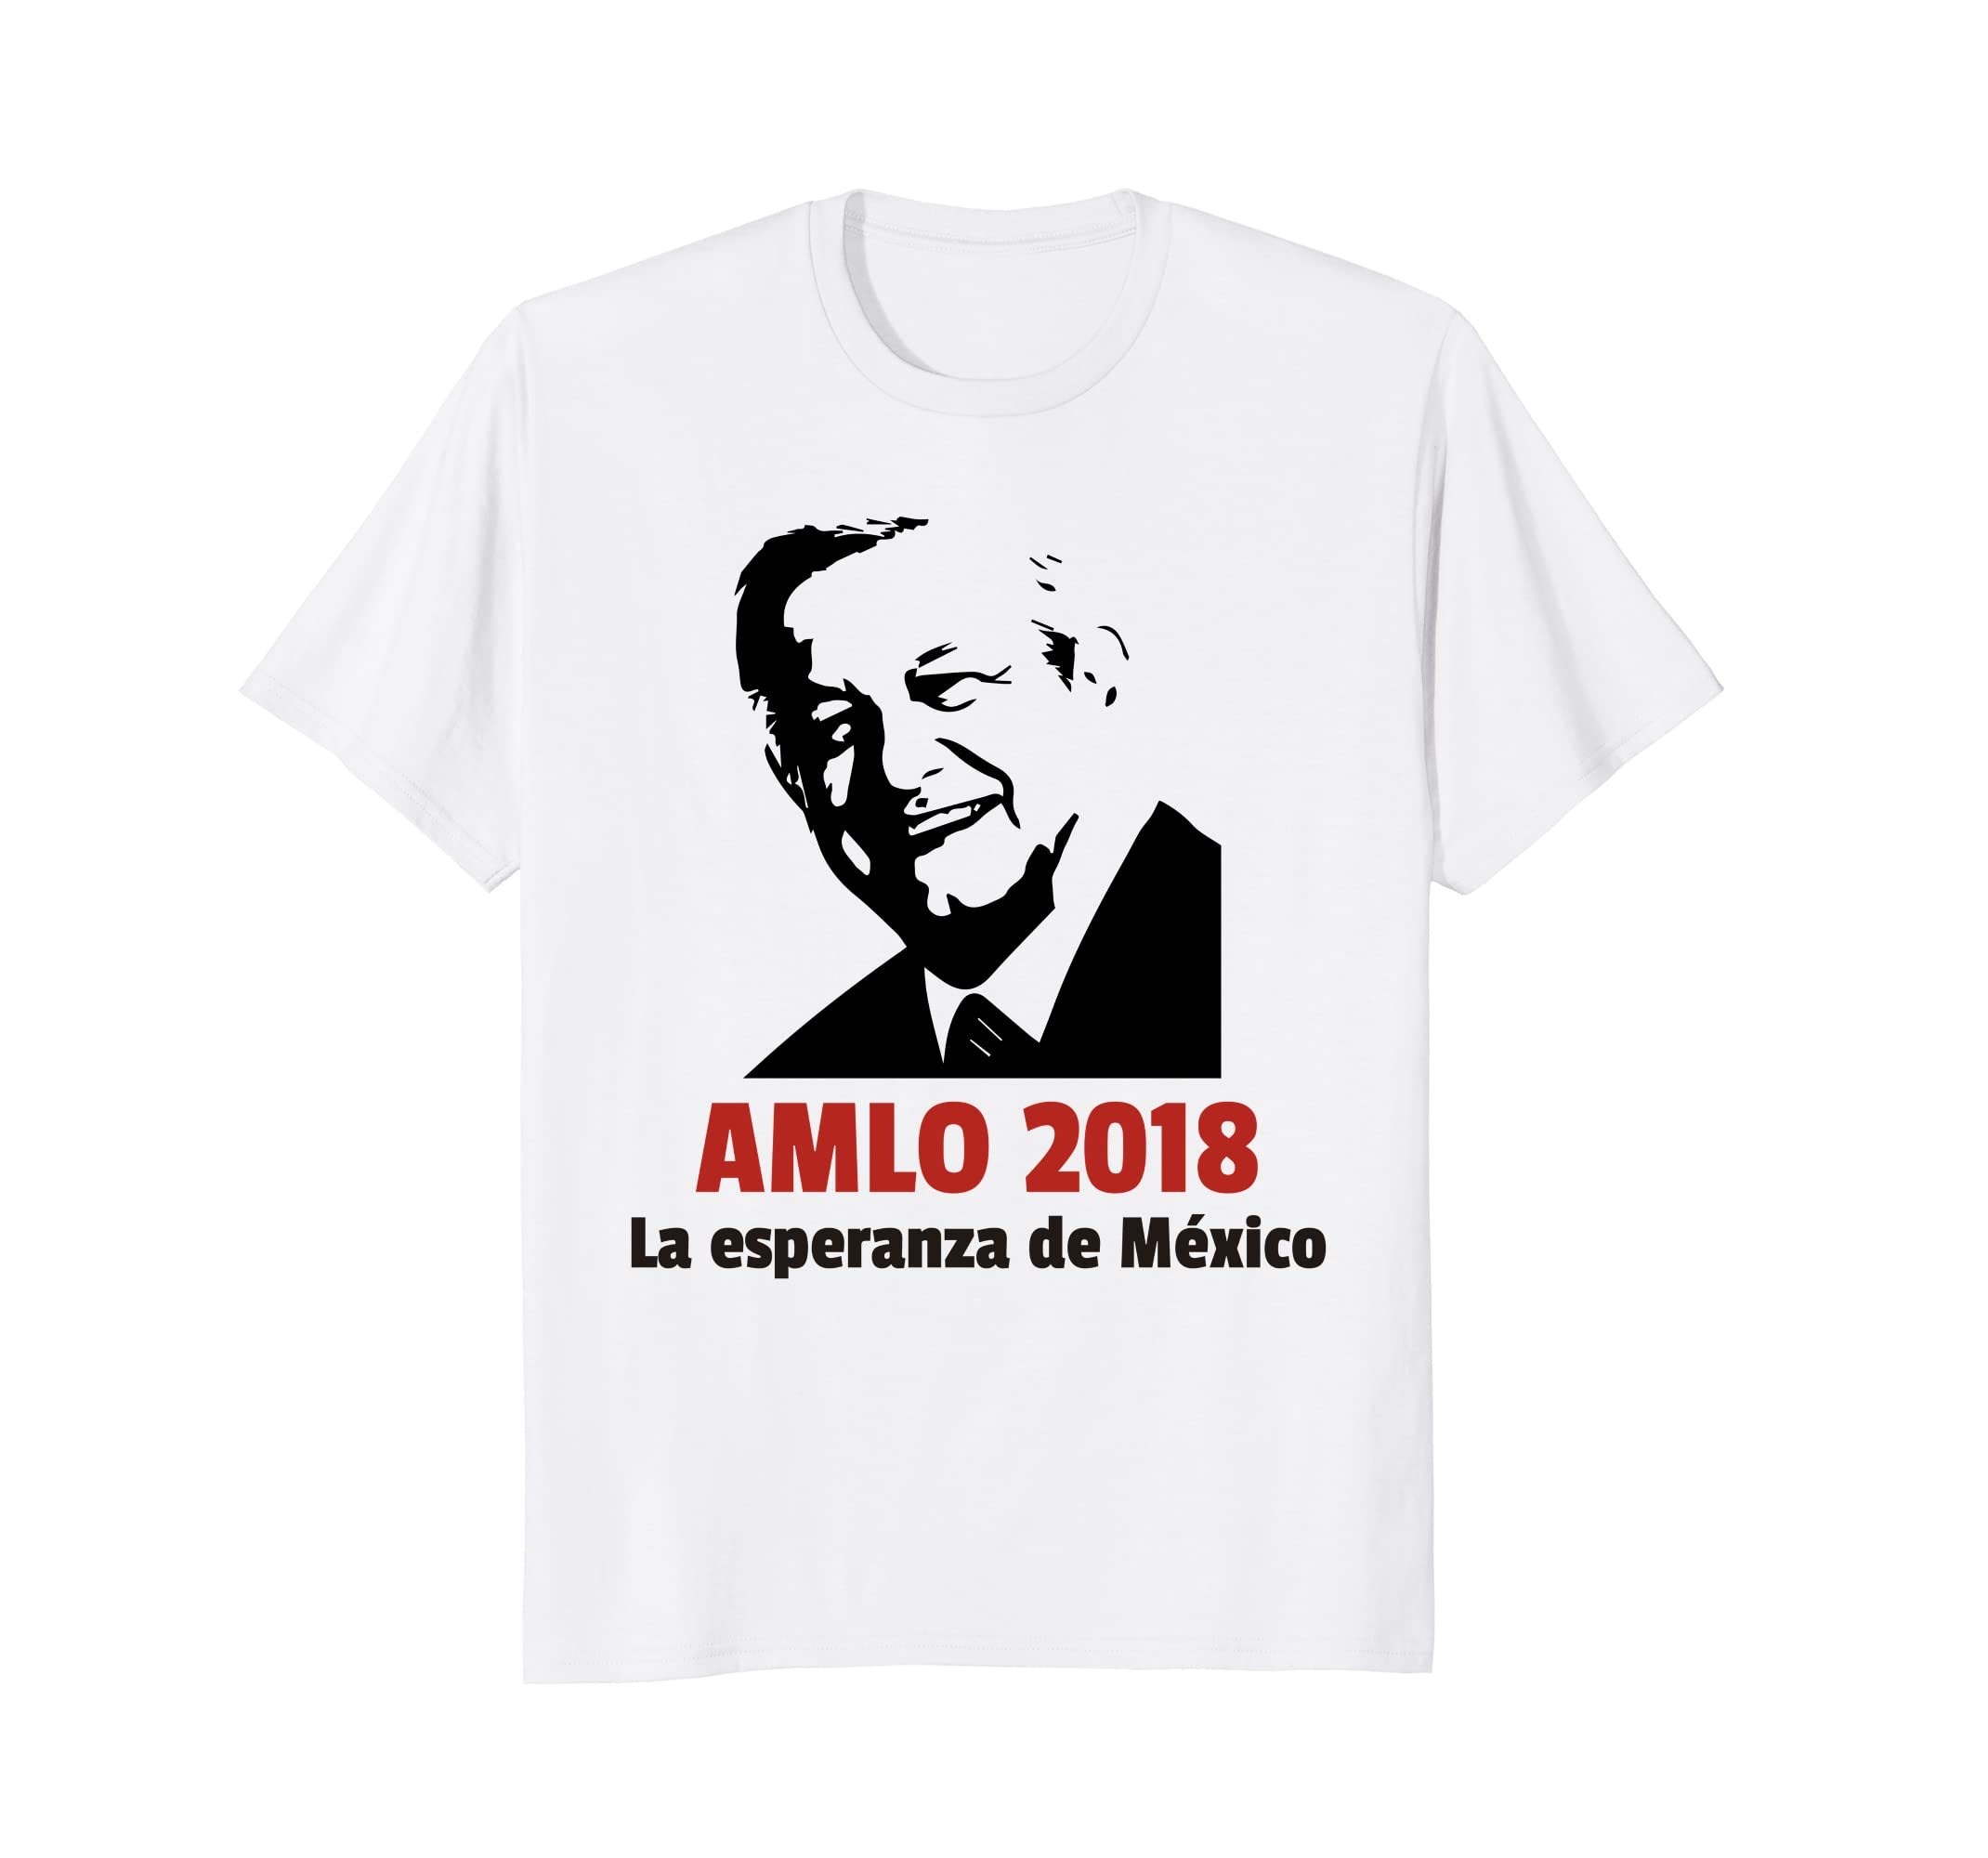 Amazon.com: AMLO 2018 - Andres Manuel Lopez Obrador Shirt Playera Camisa: Clothing